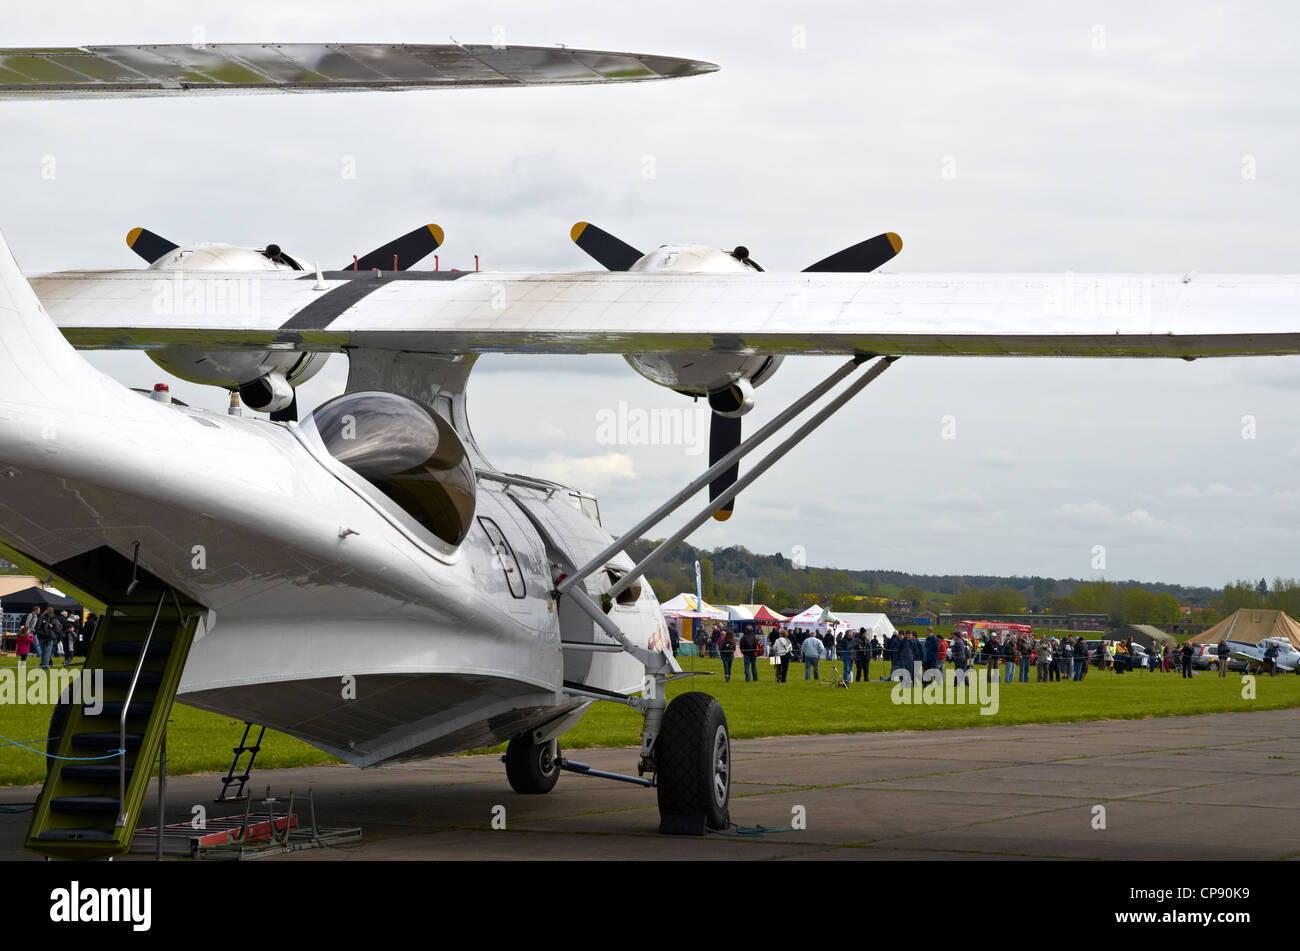 The Consolidated PBY Catalina was an American flying boat of WW2. This ione is displayed at Abingdon Airshow 2012. - Stock Image